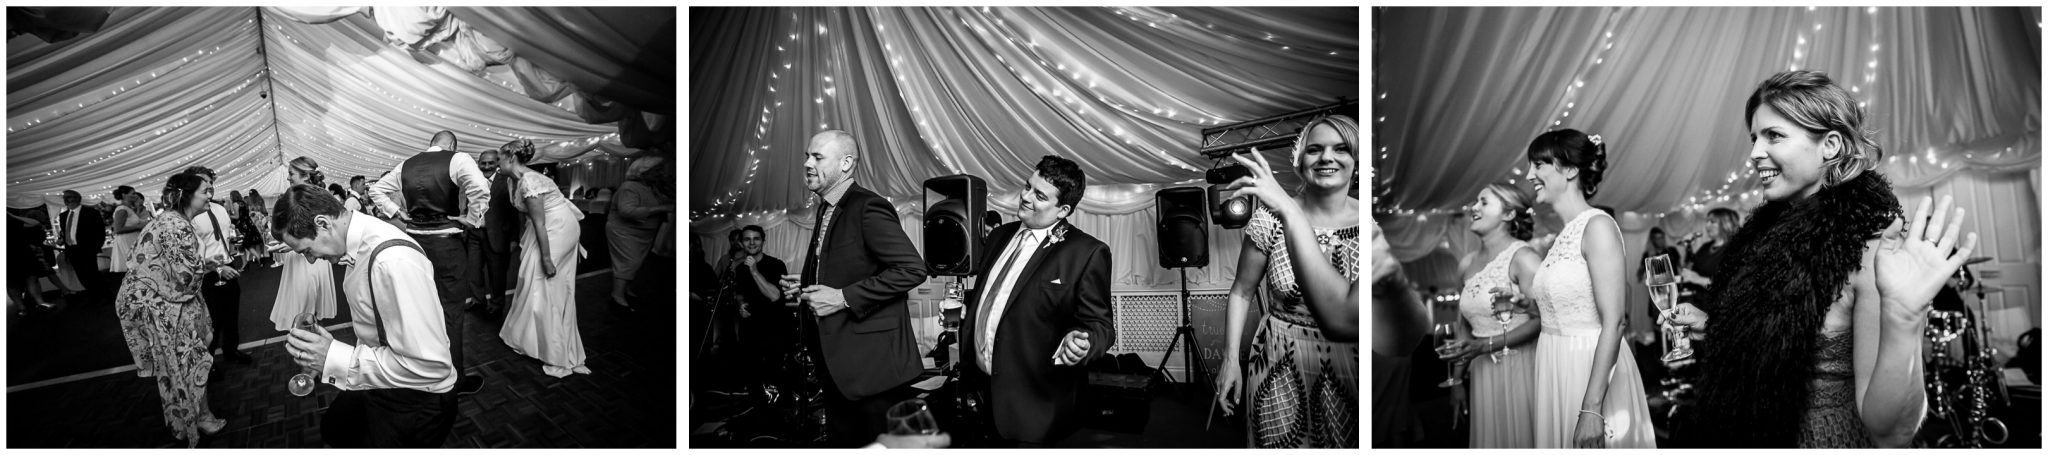 Oakley Hall wedding photography dancefloor action